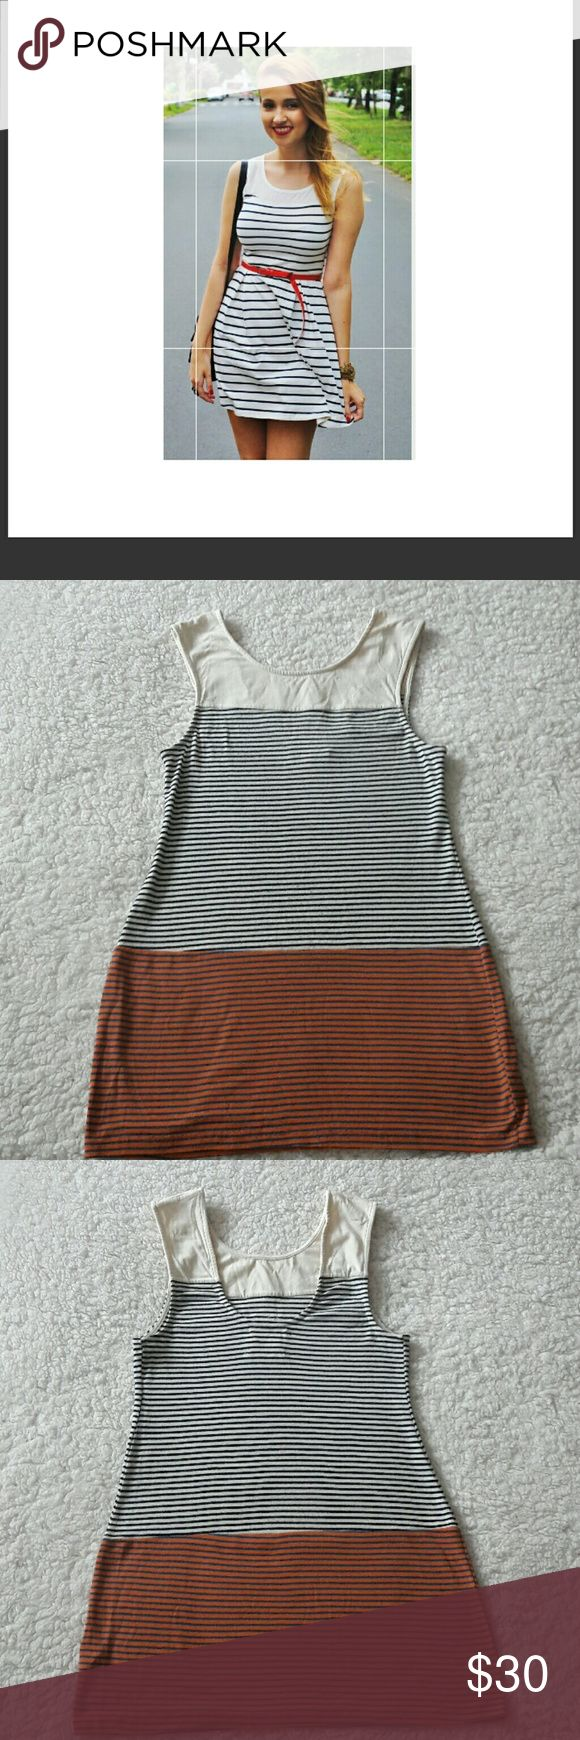 Anthropology dress Comfy t-shirt dress by Anthropology  Size Medium  Some pills but not to bad just need to be mentioned Anthropologie Dresses Mini